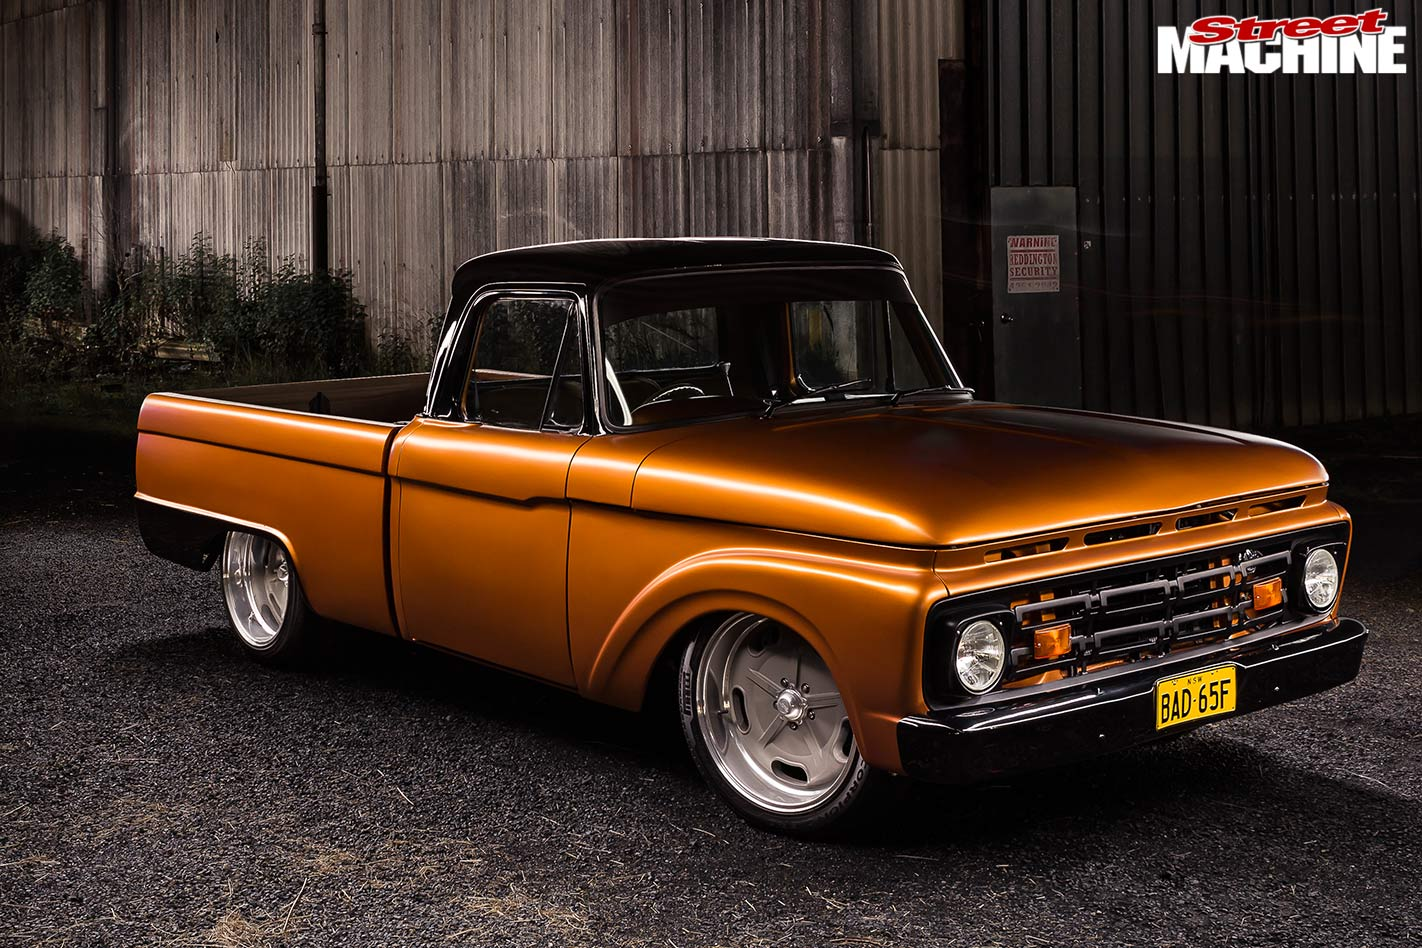 CHEVROLET SMALL BLOCK-POWERED 1965 FORD F100 TRUCK - BAD 65F